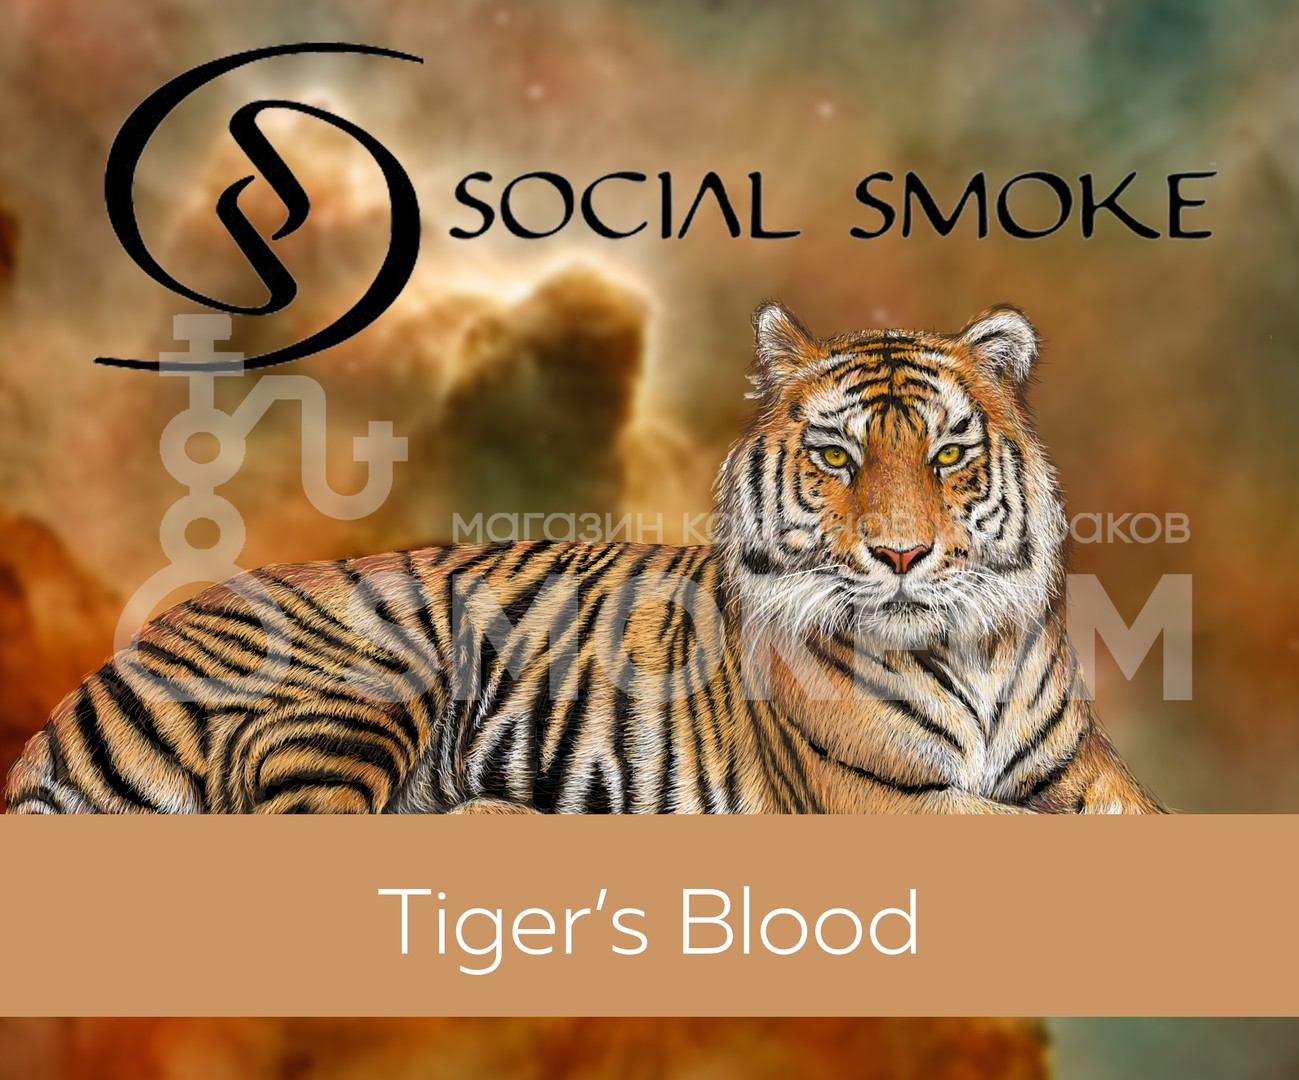 Табак Social Smoke - Tiger's Blood (Кровь Тигра) 250 гр